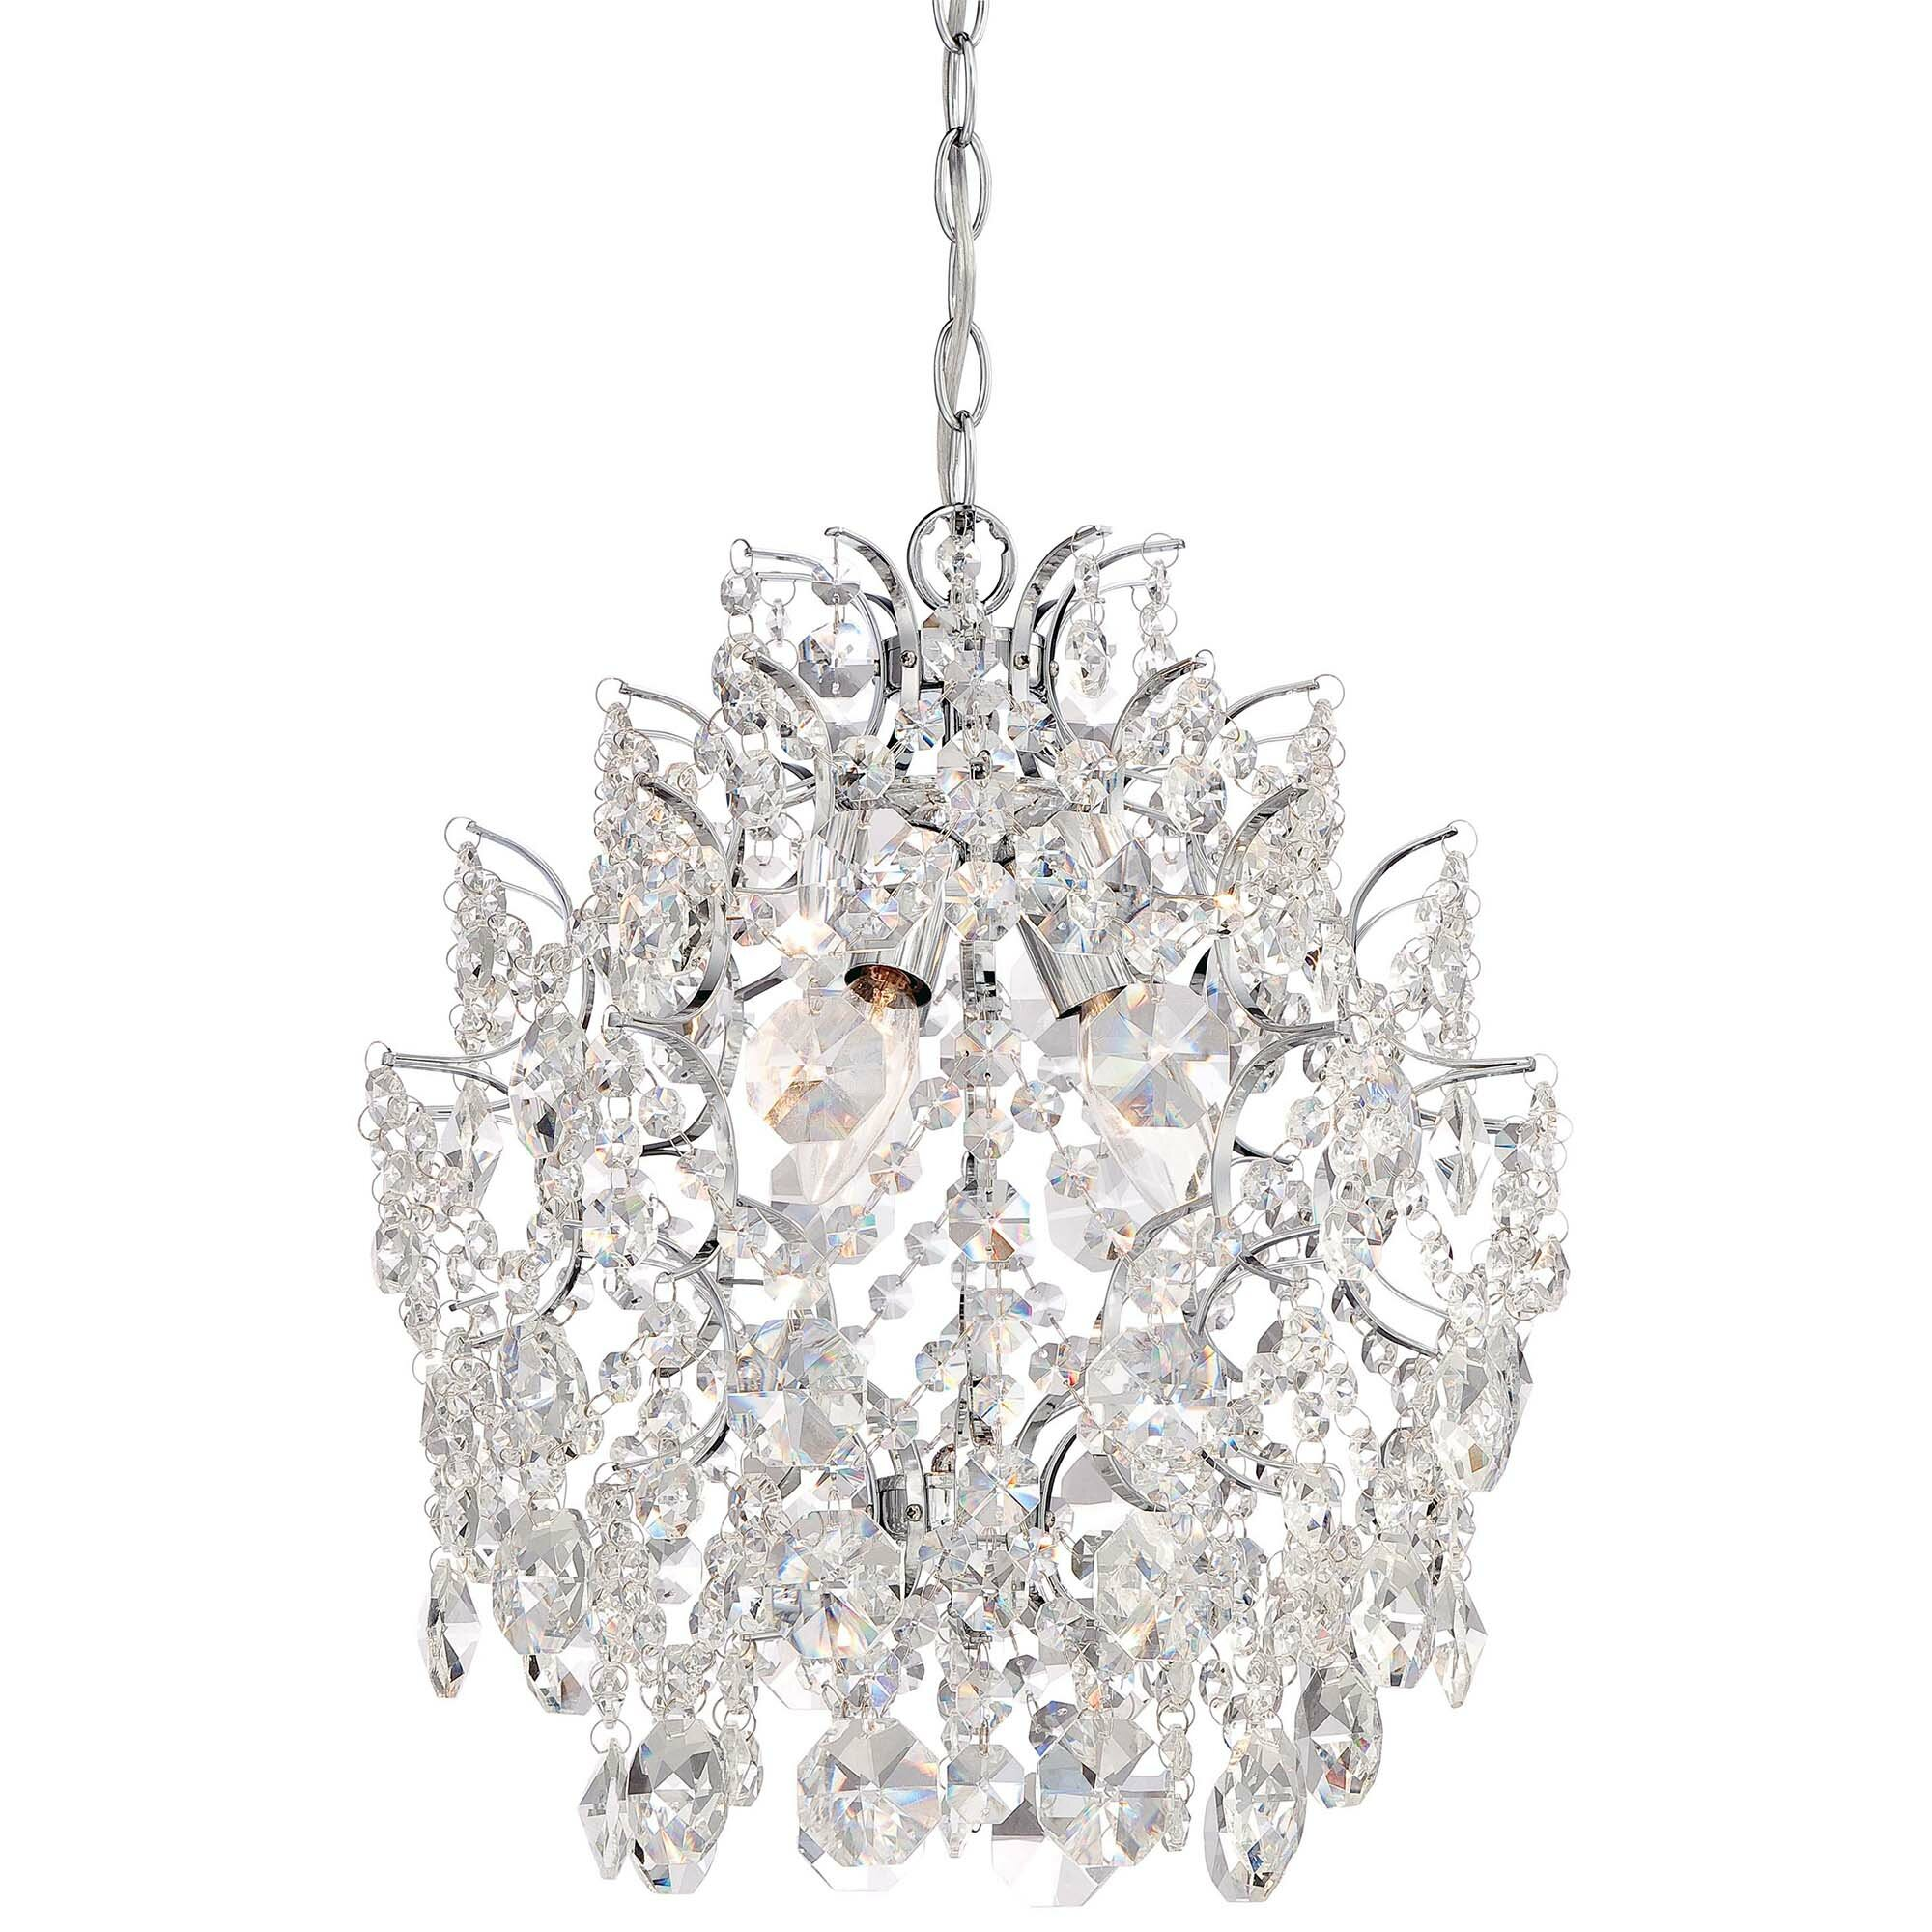 Mini or Small Chandeliers Youll Love – Crystal Mini Chandeliers